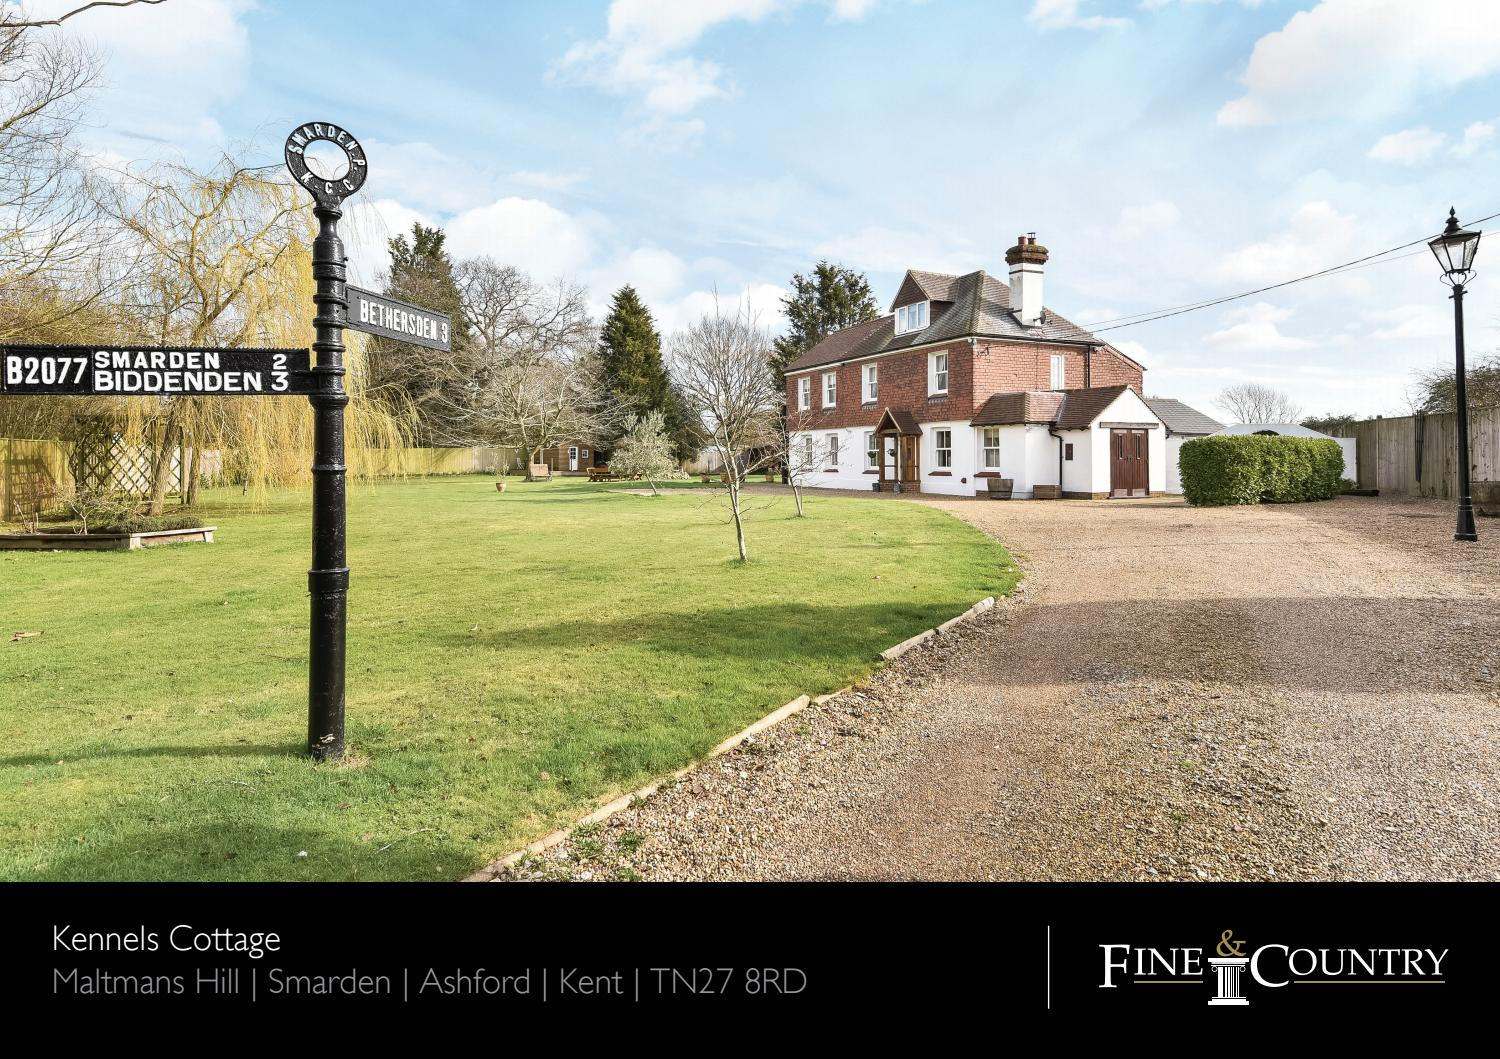 Maltmans Hill, Smarden, Kent by Fine & Country - issuu